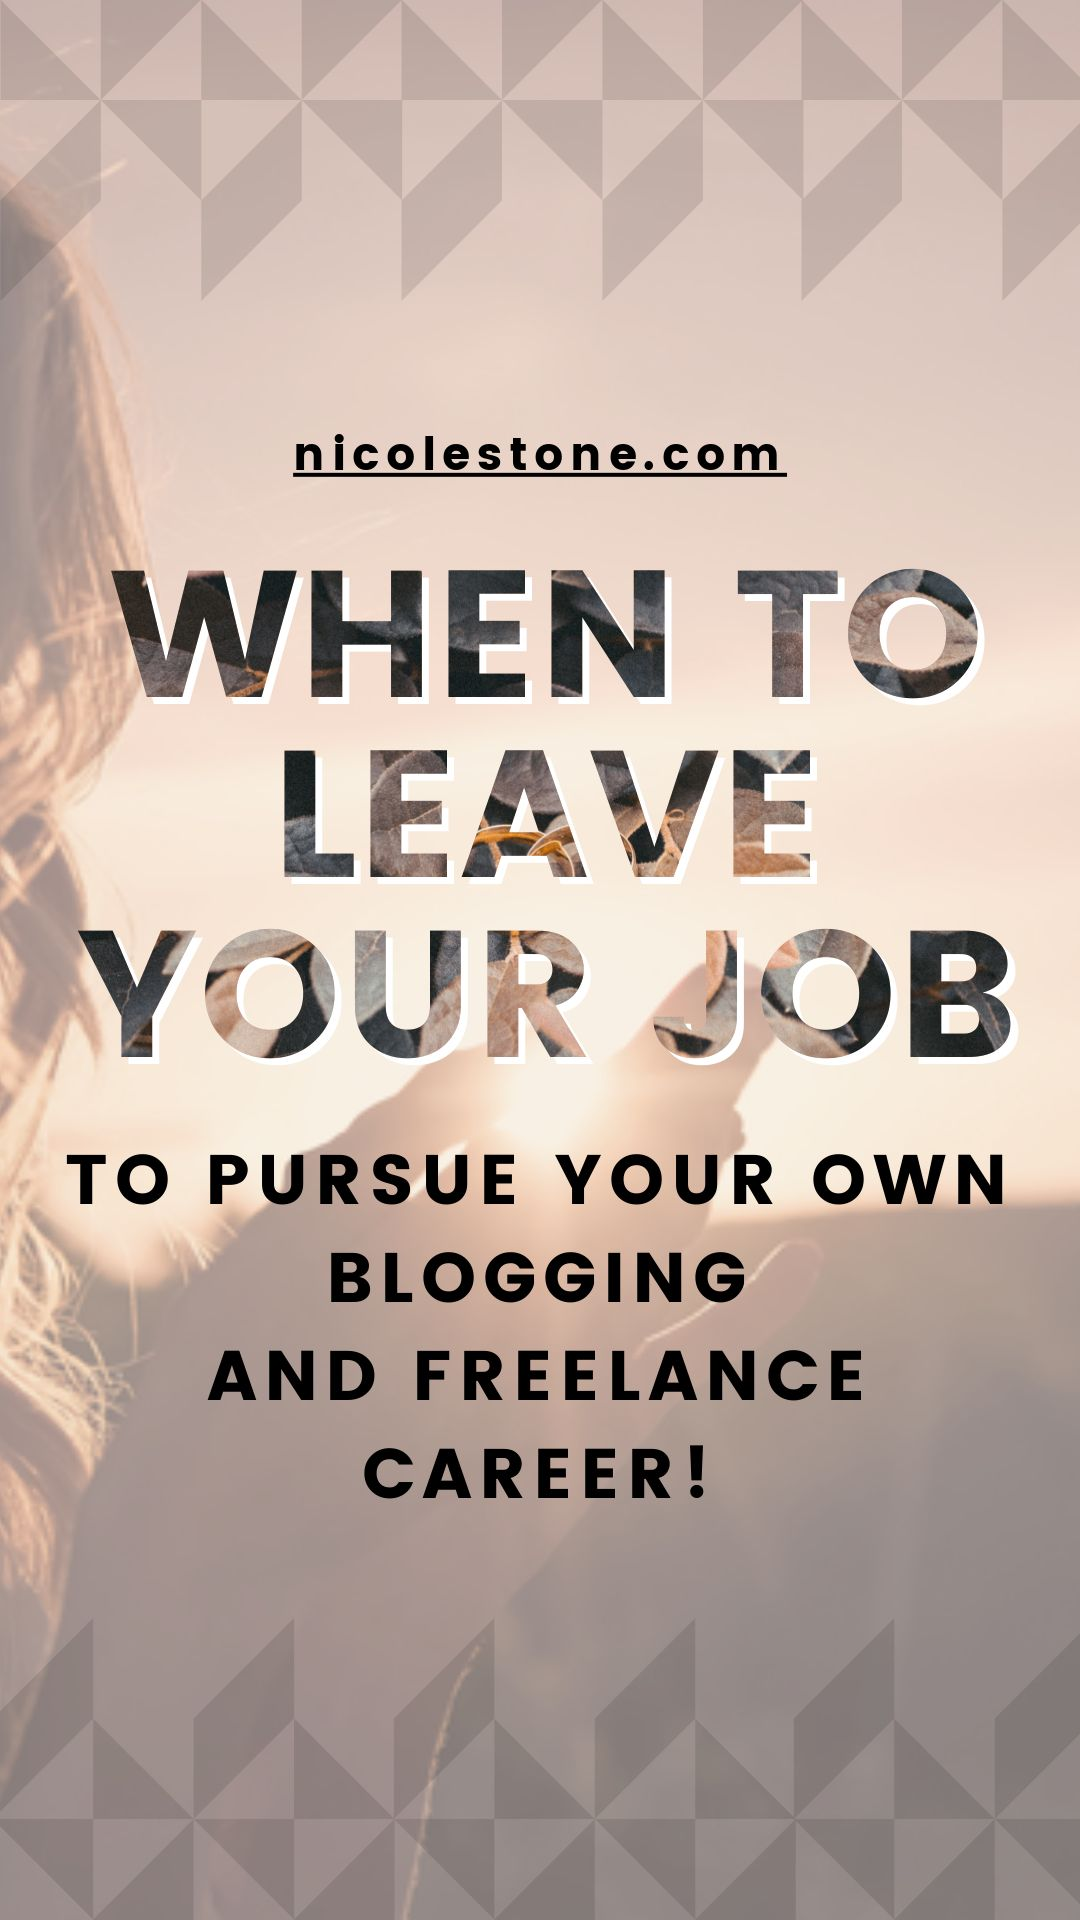 Looking to work for yourself? Learn when it's right to leave your job and work from home with this freelance guide.  #workfromhome #workathom #freelance #career #personaldevelopment